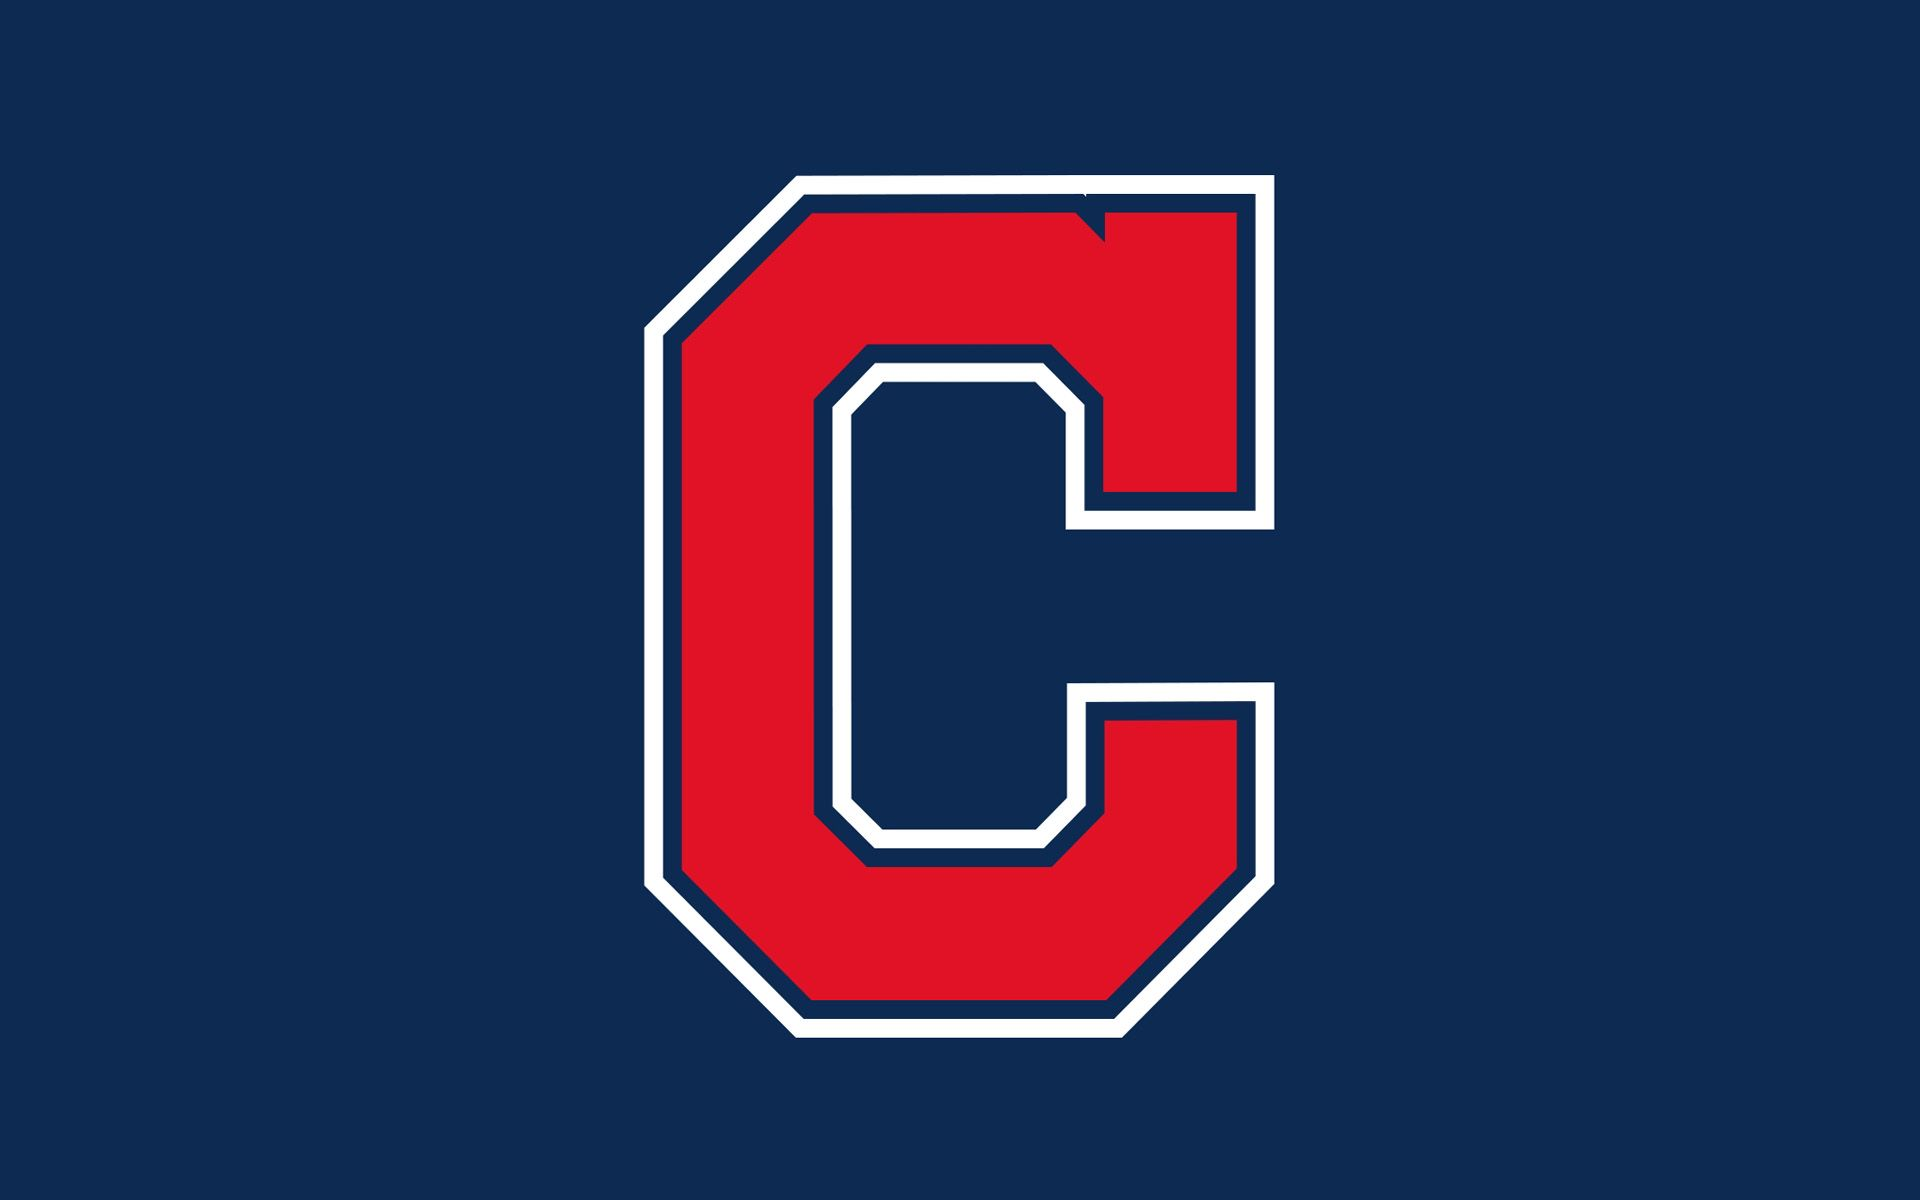 Wallpaper Not Found For Category Cleveland Indians Page 6 Cleveland Indians Wallpaper Cleveland Indians Cleveland Indians Baseball